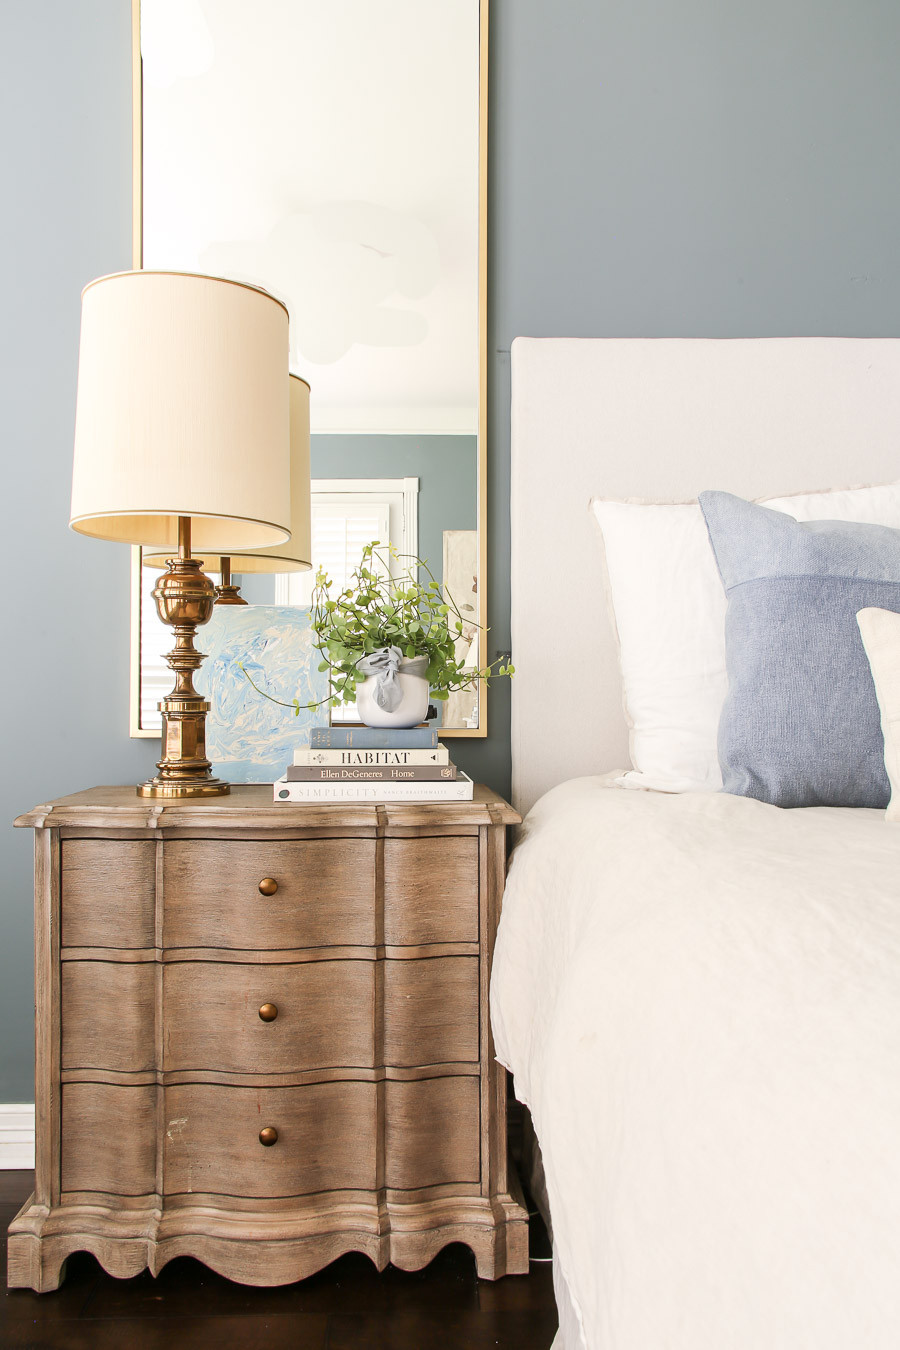 styled traditional grandmillenial nightstand